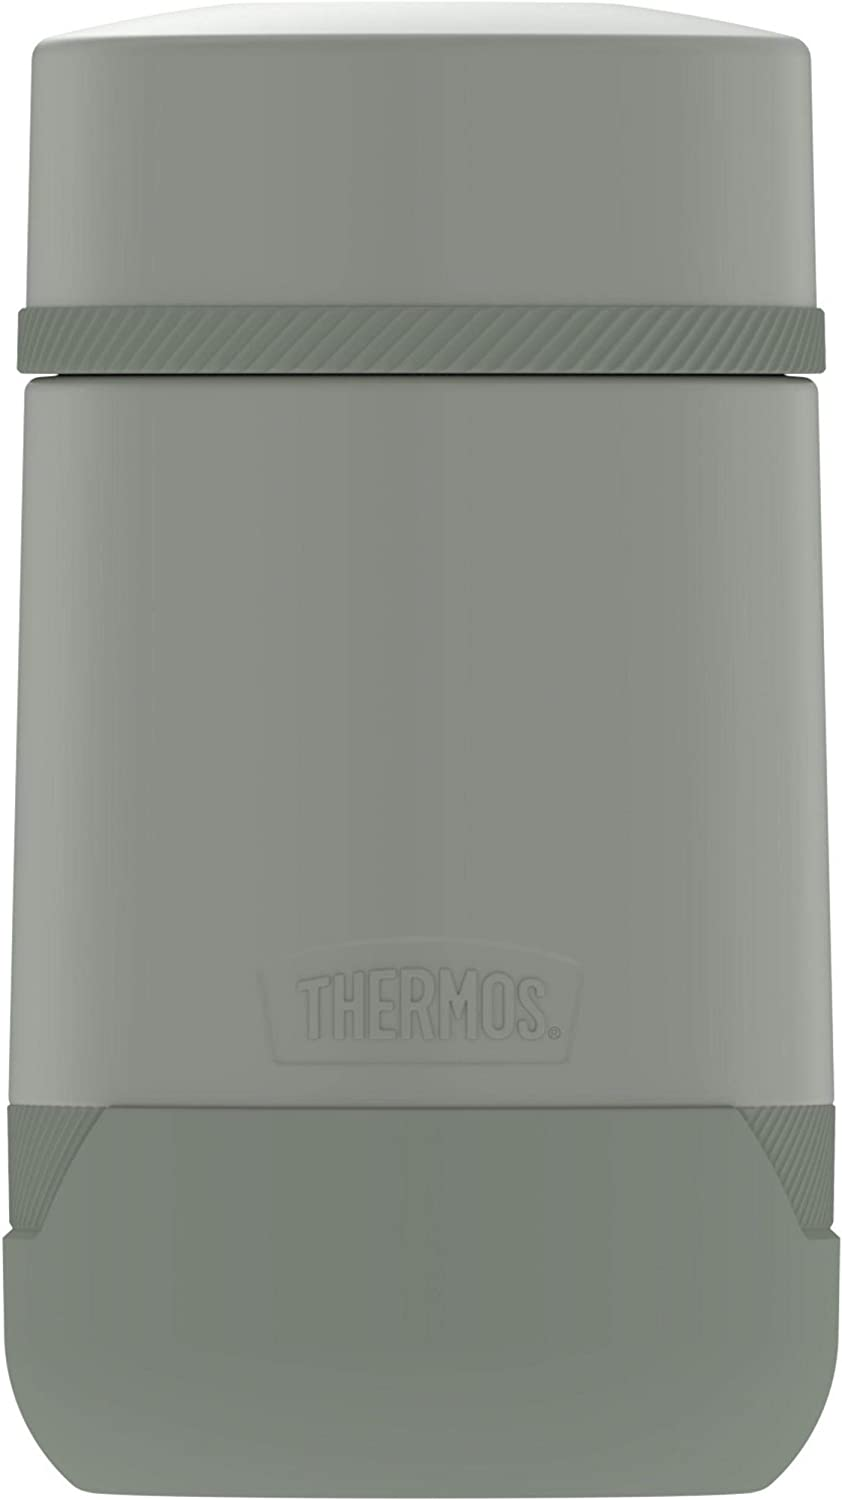 Guardian Collection by THERMOS Stainless Steel Food Jar 18 Ounce, Matcha Green